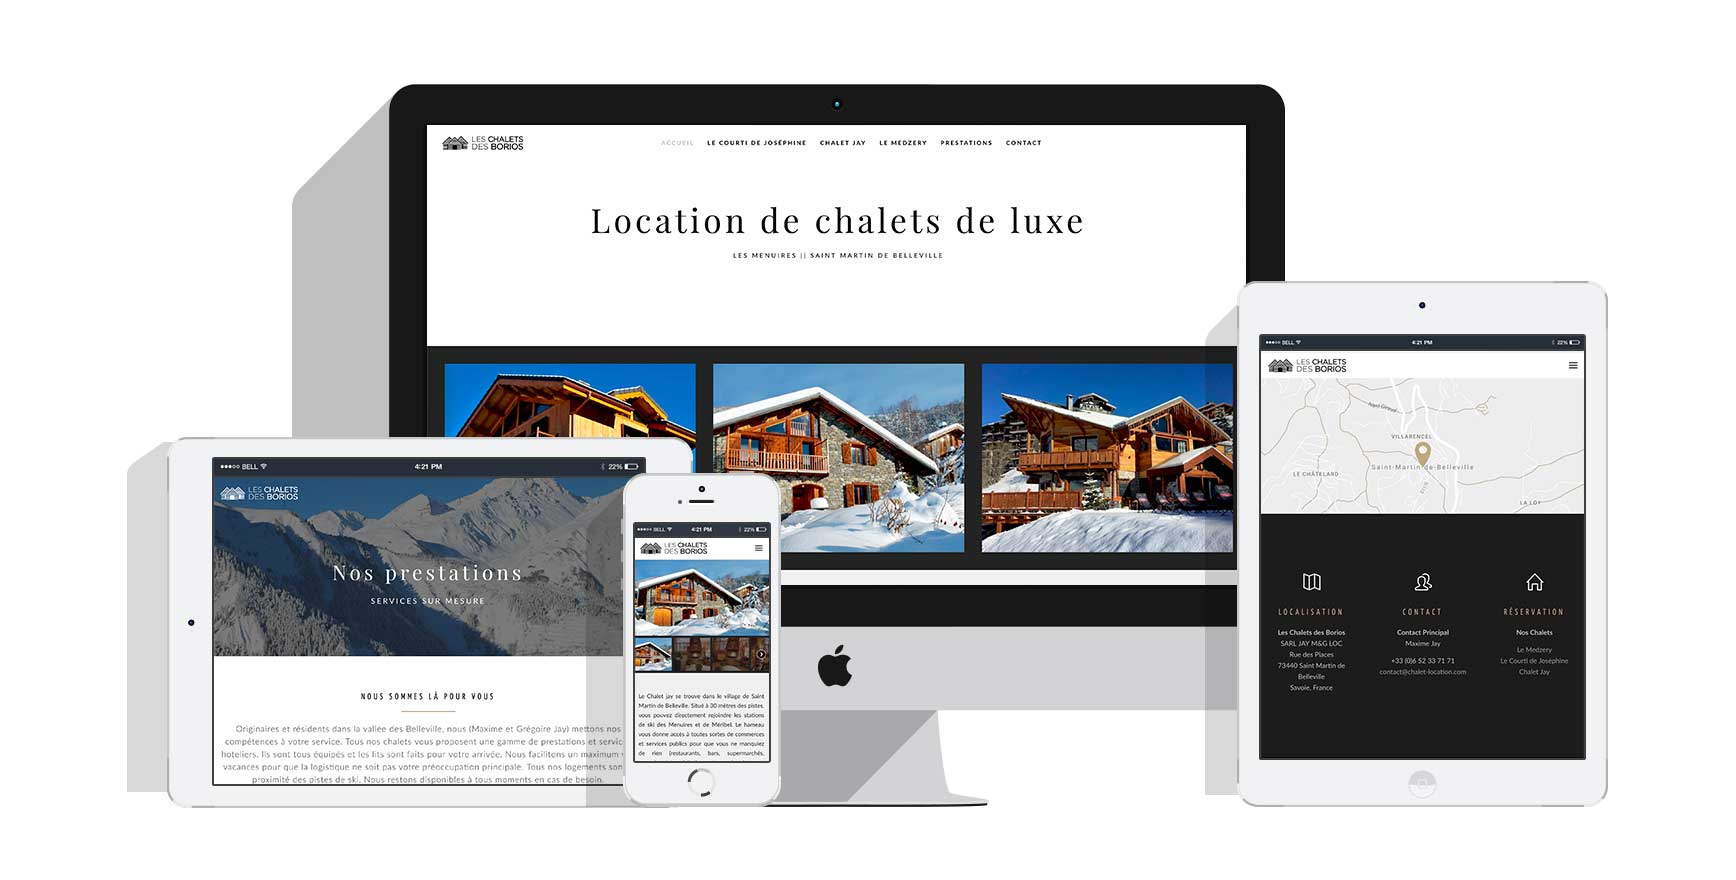 portfolio-chalet-location-borios-florence-borrel-flobo-design-graphique-infographie-webdesign-savoie-tarentaise-meribel-menuires-courchevel